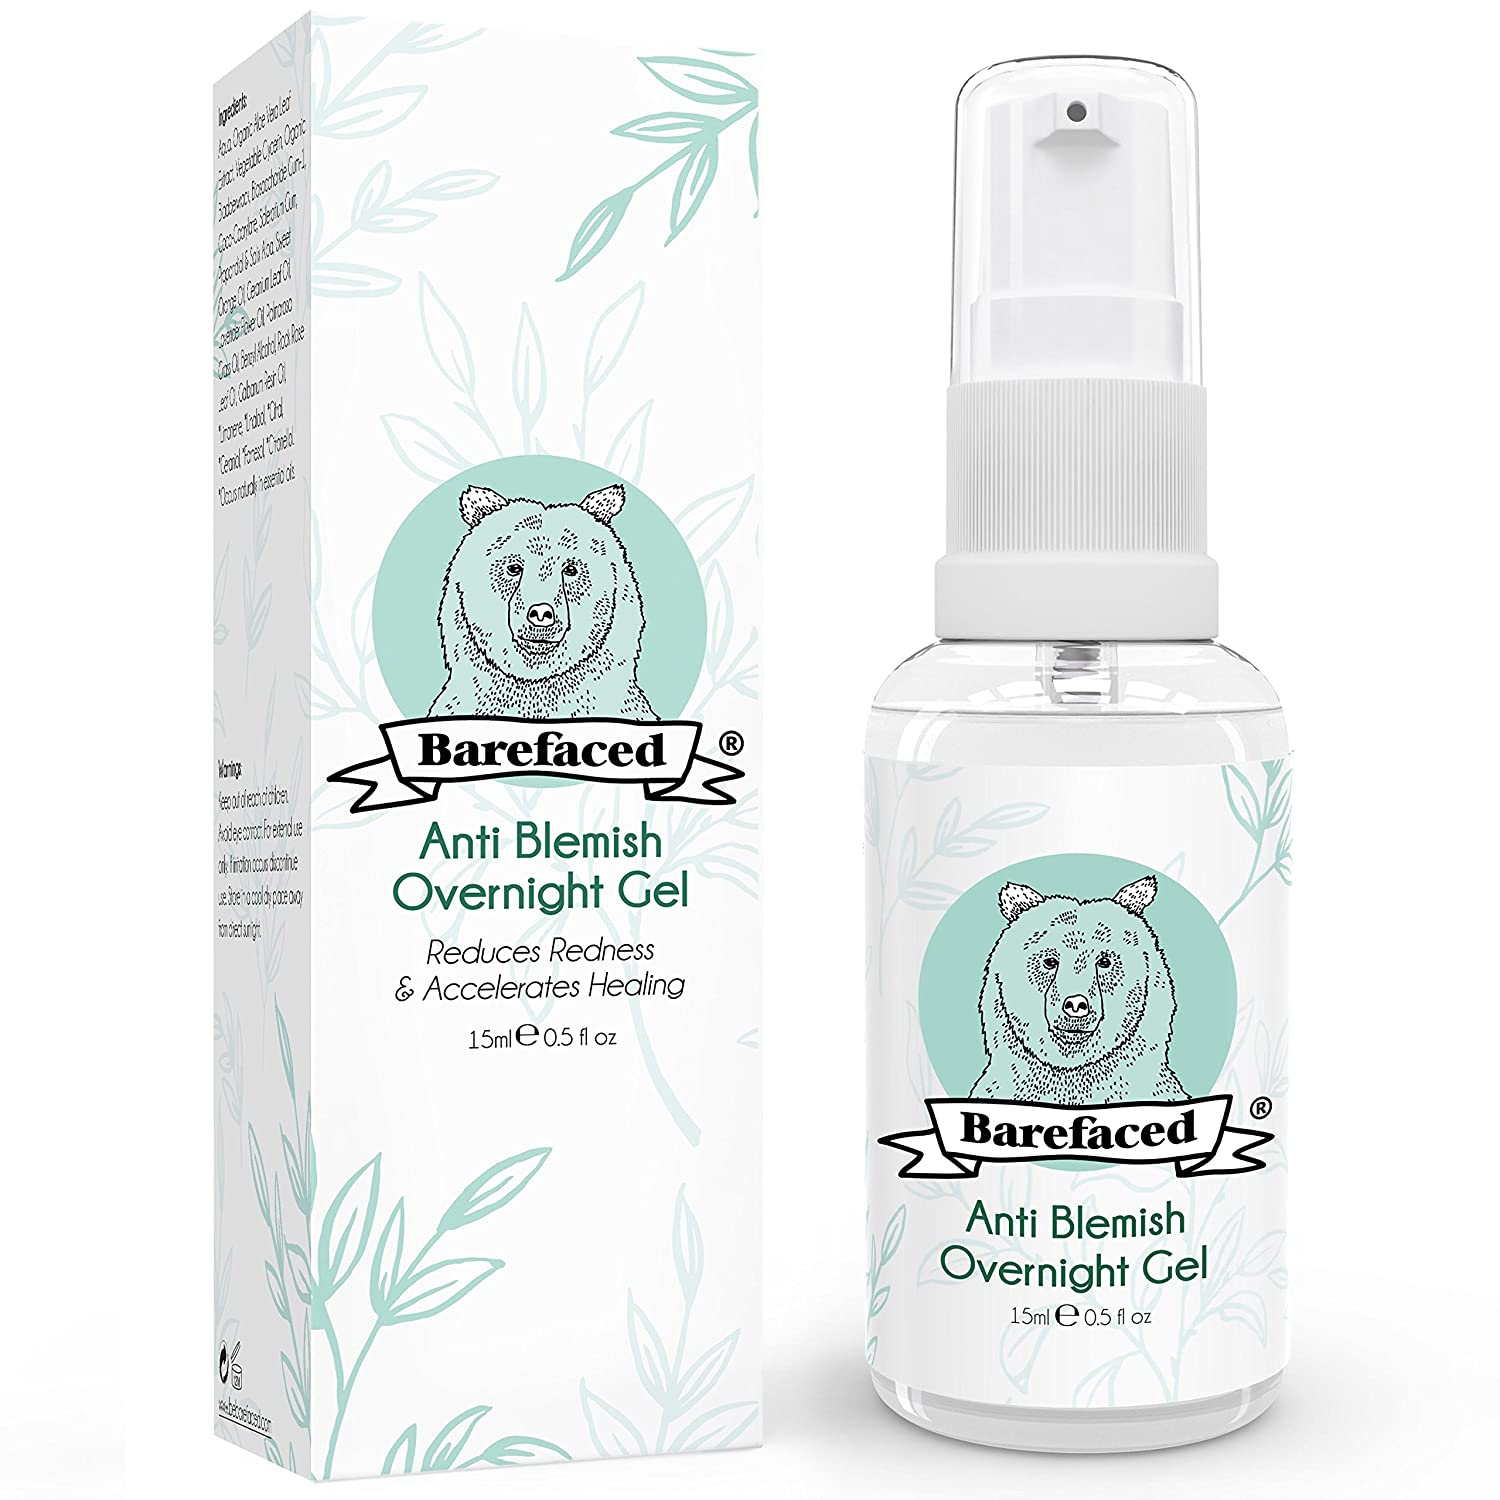 BeBarefaced Natural Anti Blemish Overnight Spot Treatment Gel - Sanitises, Speeds Healing Process, Reduces Redness, Combats Swelling and Soothes Inflammation - With Calming Organic Aloe and Seaweed BeBarefaced Ltd.